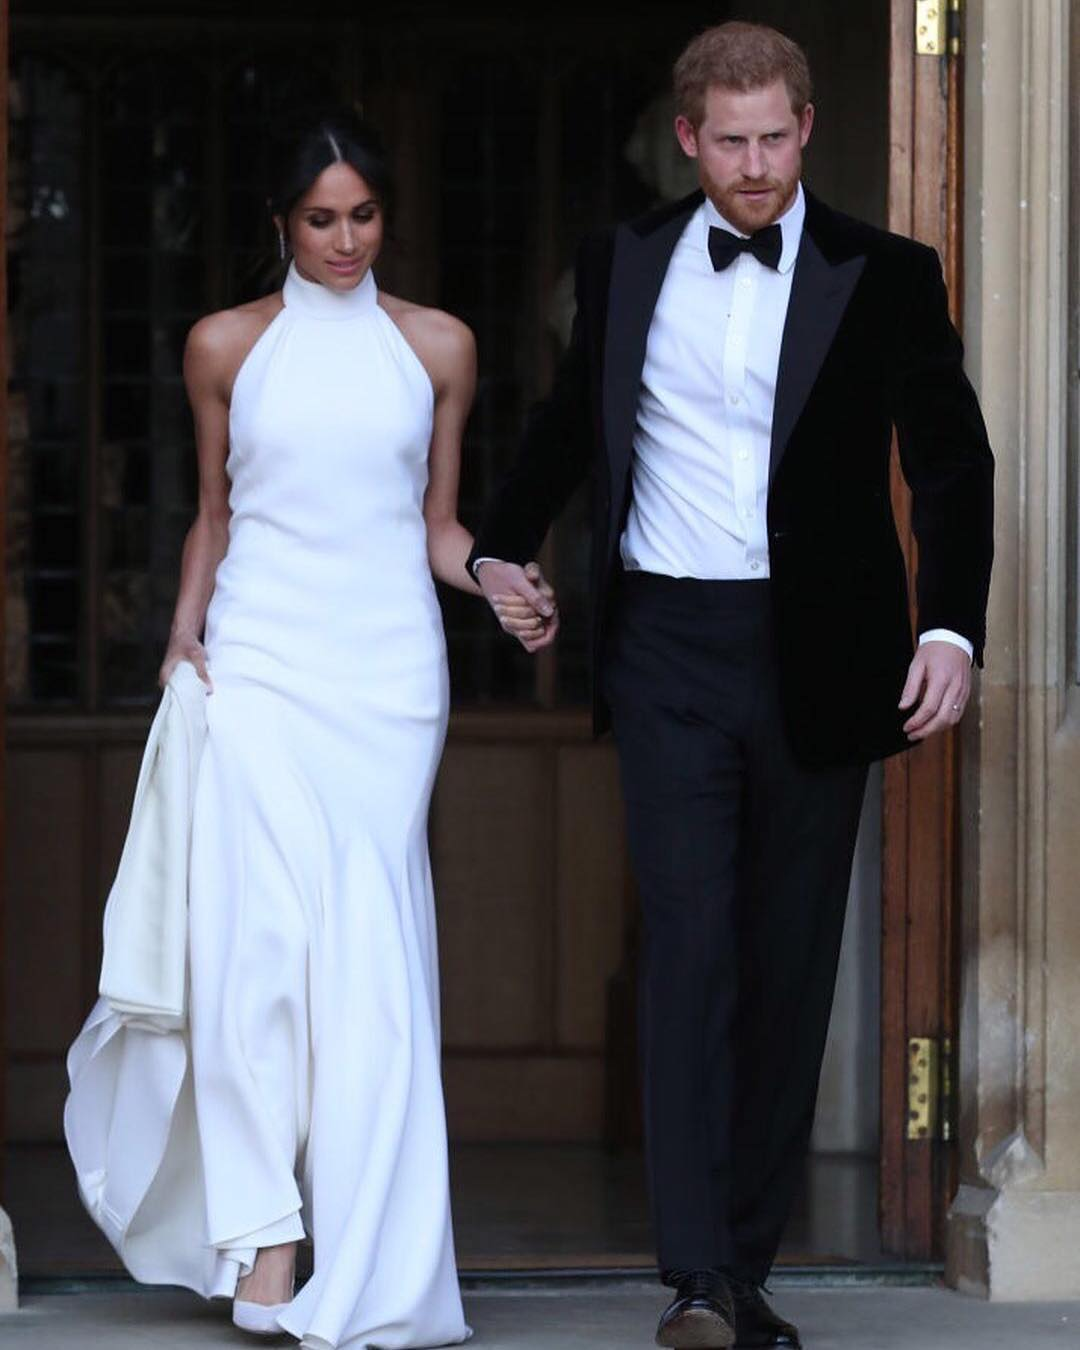 Meghan Markle Wearing High-Neck White Sleeveless Maxi Gown 2020